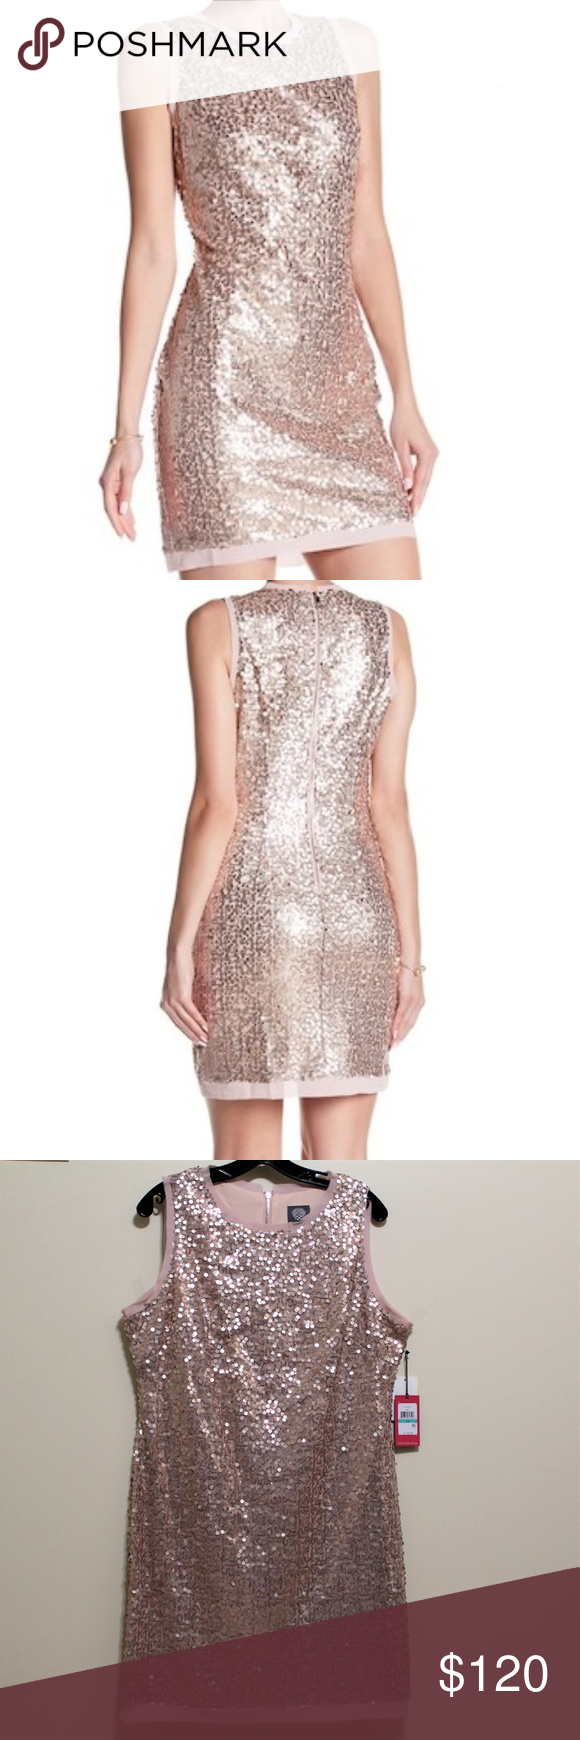 Nwt Vince Camuto Sequin Blush Pink Dress Size 16 This Brand New With Tags Rose Gold Blush Pink Vince Camuto Sequin Blush Pink Dresses Dresses Size 16 Dresses [ 1740 x 580 Pixel ]